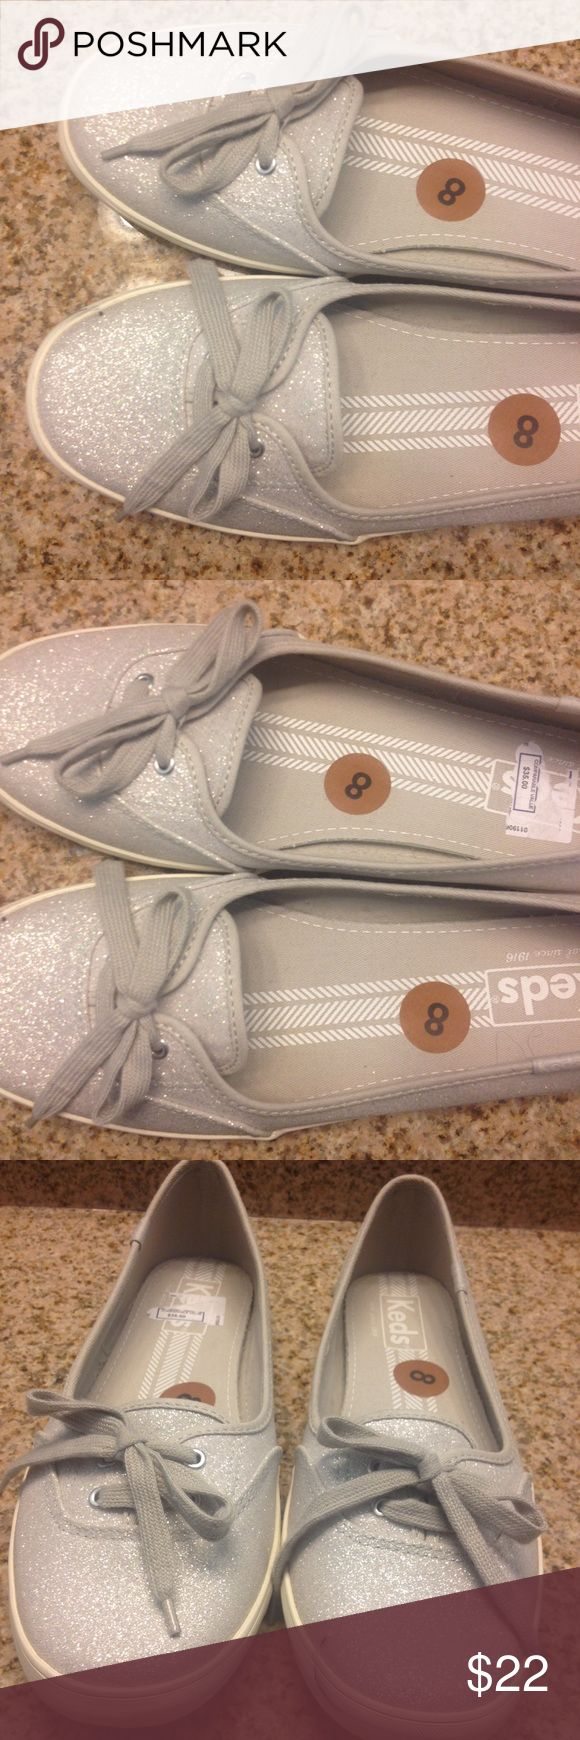 Keds flats Silver flat shoes, like new, worn once. Without box. It has a little dark mark on it, visible in the picture. Keds Shoes Flats & Loafers